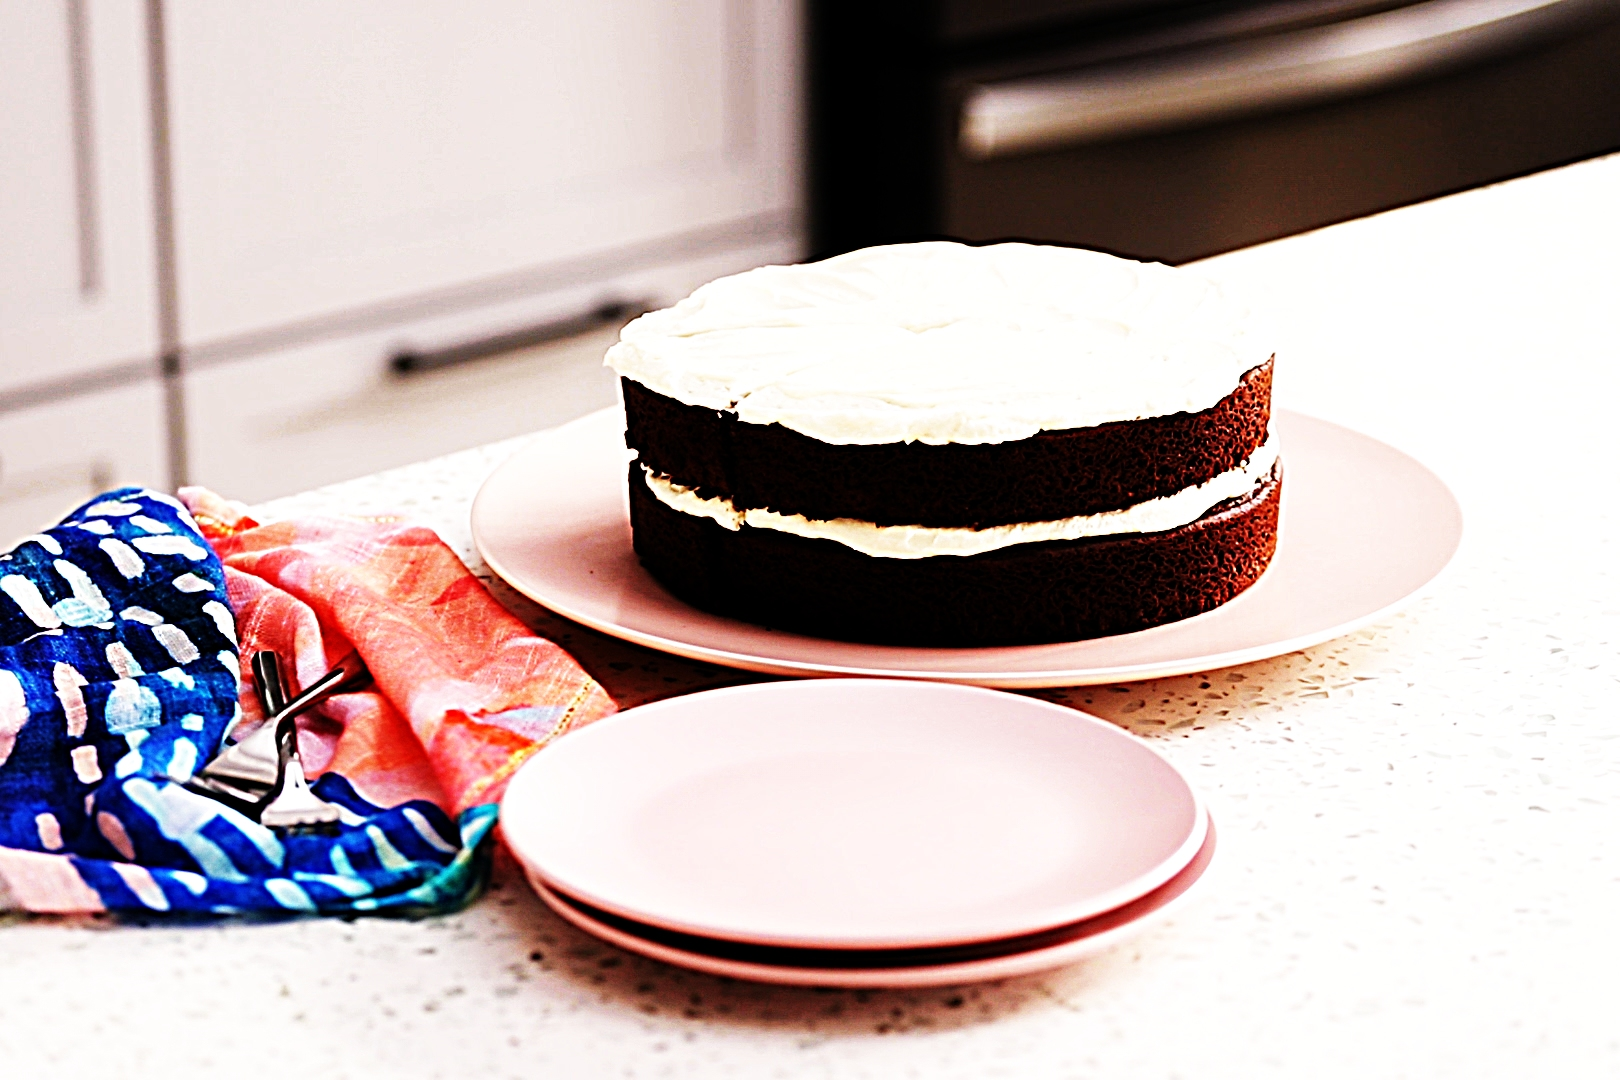 Stupid-Easy Recipe for Gluten-Free Chocolate Cake (#1 Top-Rated)